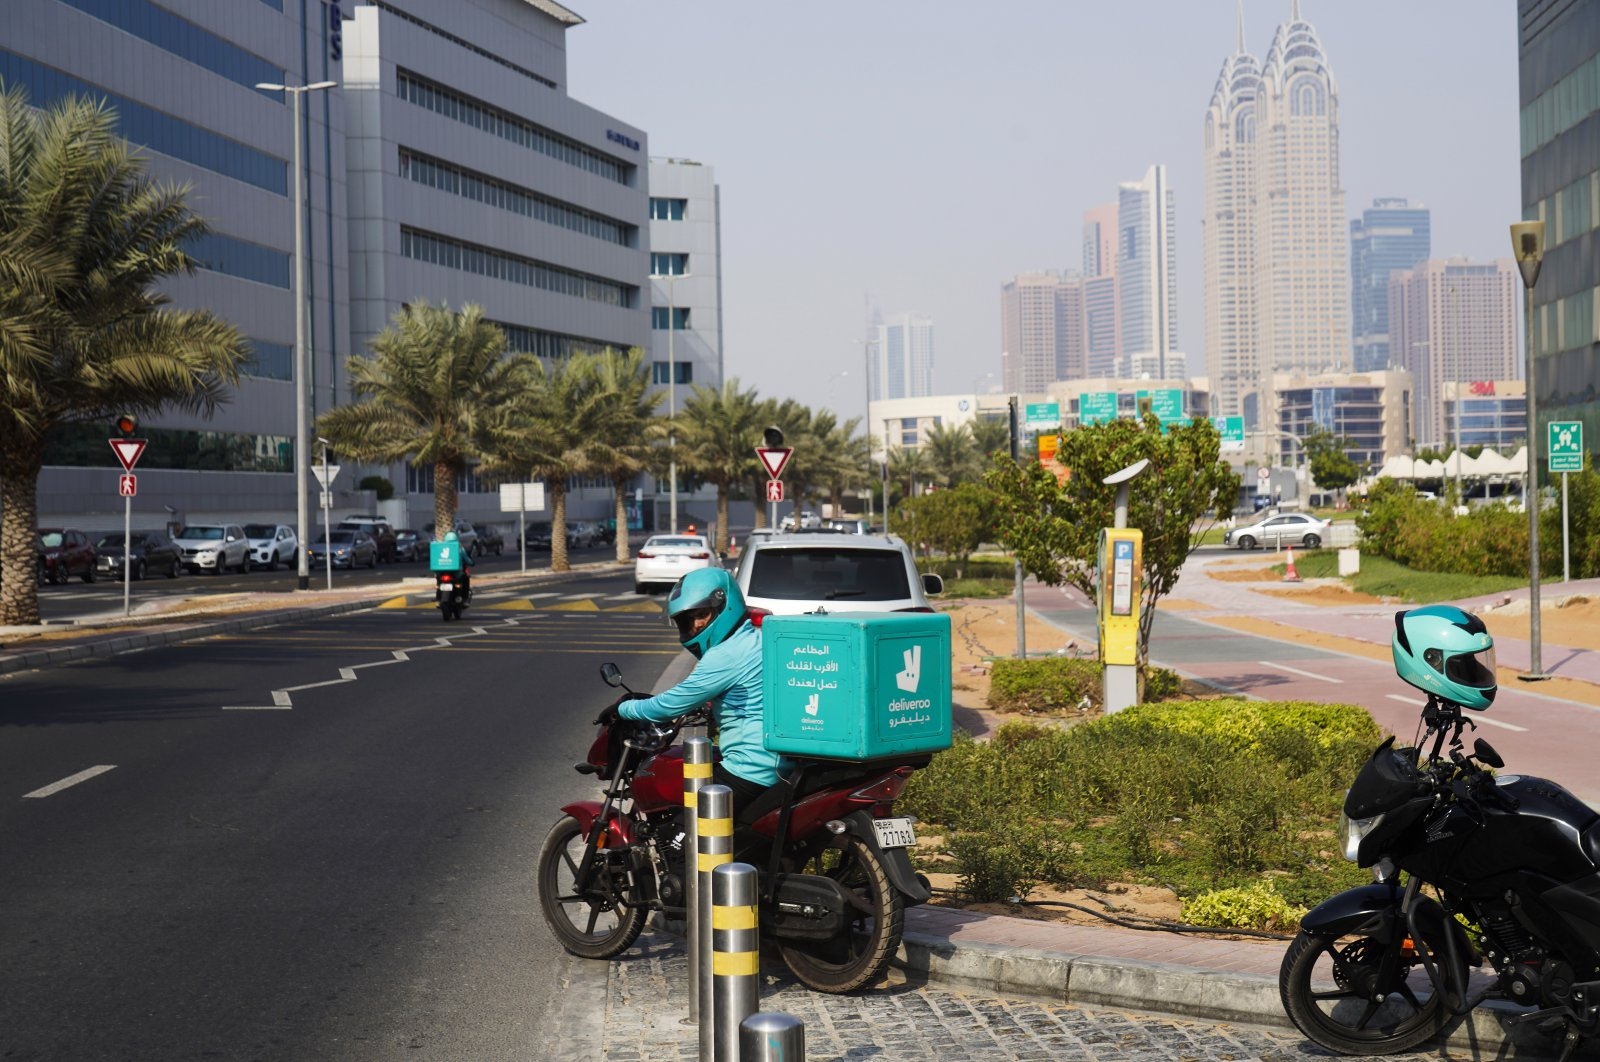 A delivery driver for the app Deliveroo prepares to make a delivery, in Dubai, United Arab Emirates, Sept. 9, 2021. (AP Photo)